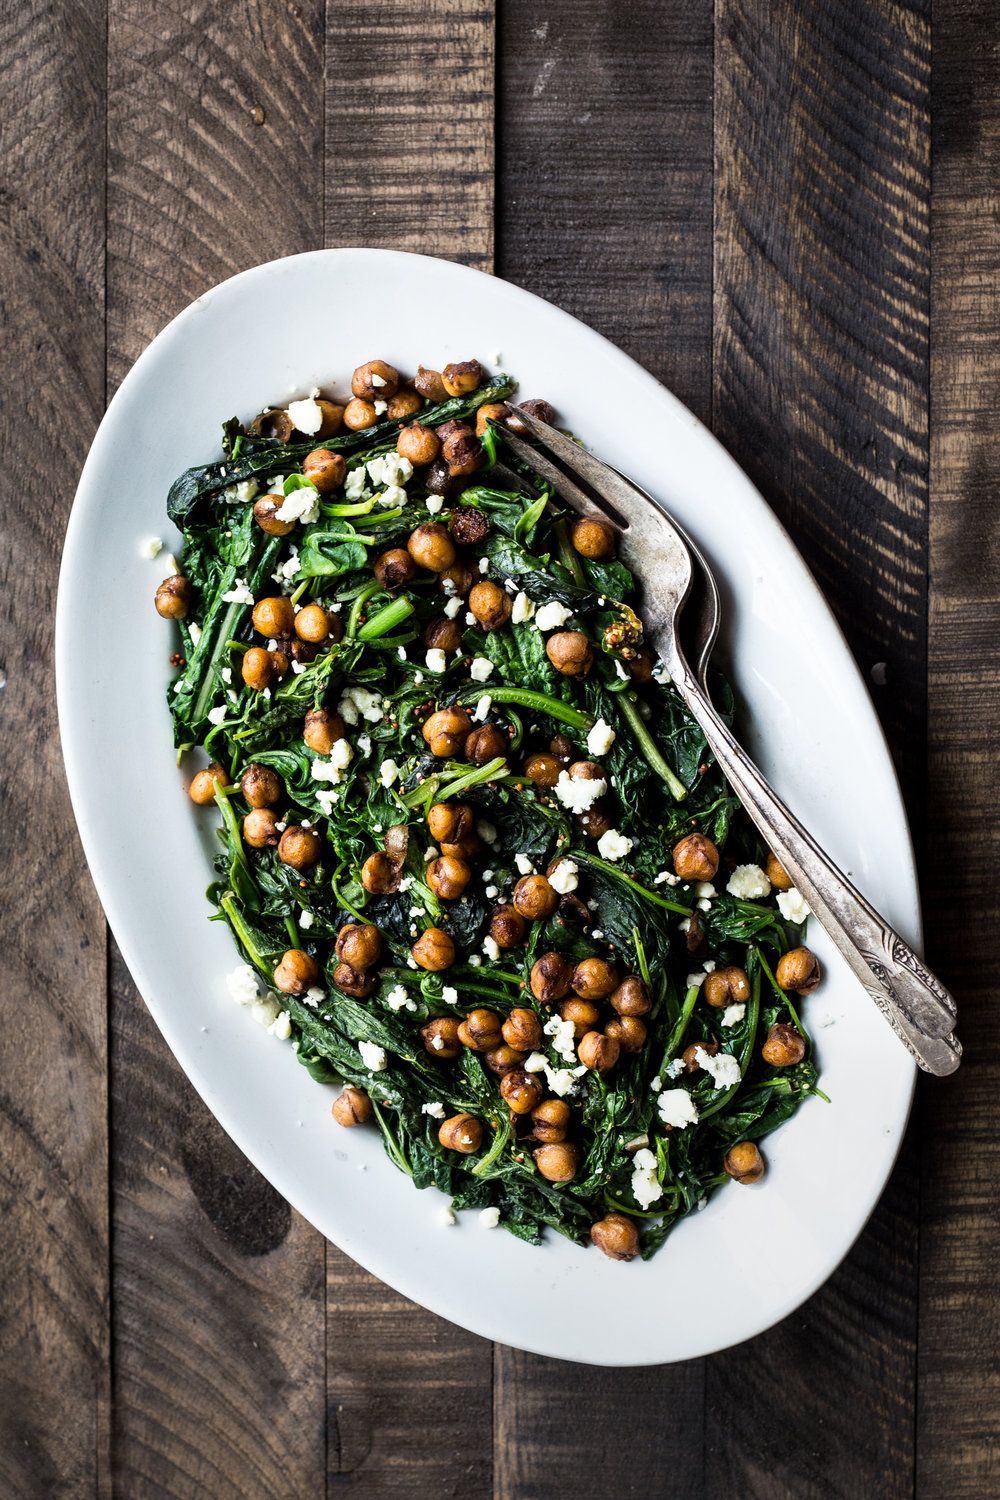 Braised Mustard Greens with Balsamic Glazed Chickpeas